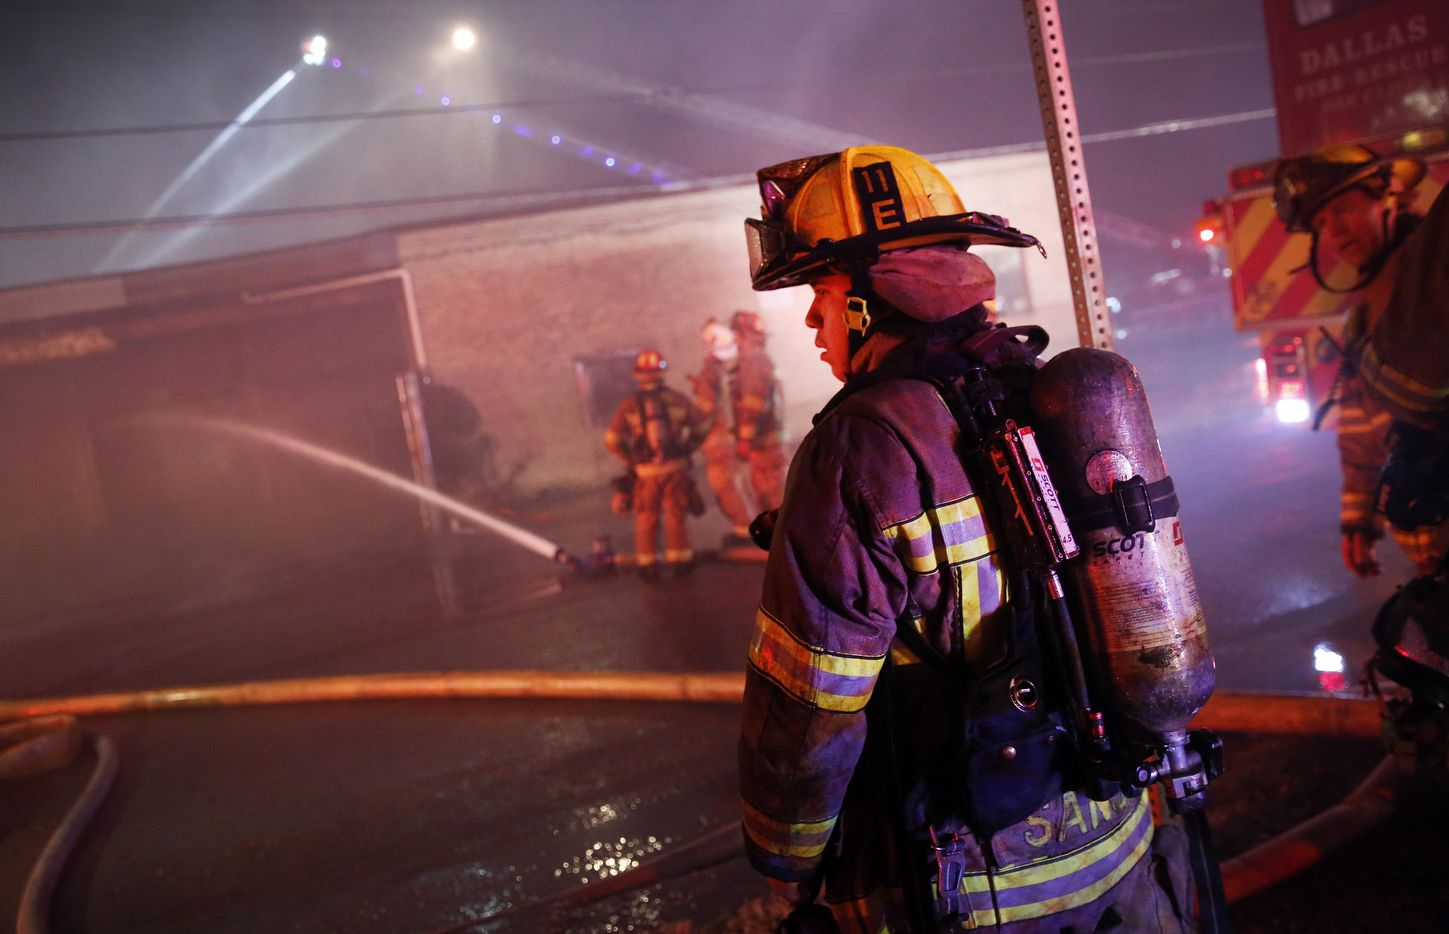 Dallas firefighters wait to join the battle of a four-alarm business fire in the Fair Park area, just south of Interstate 30 near the Austin Street Shelter, Wednesday, November 13, 2019. Smoke was seen rolling across Interstate 30 from the ORS Food Company. (Tom Fox/The Dallas Morning News)